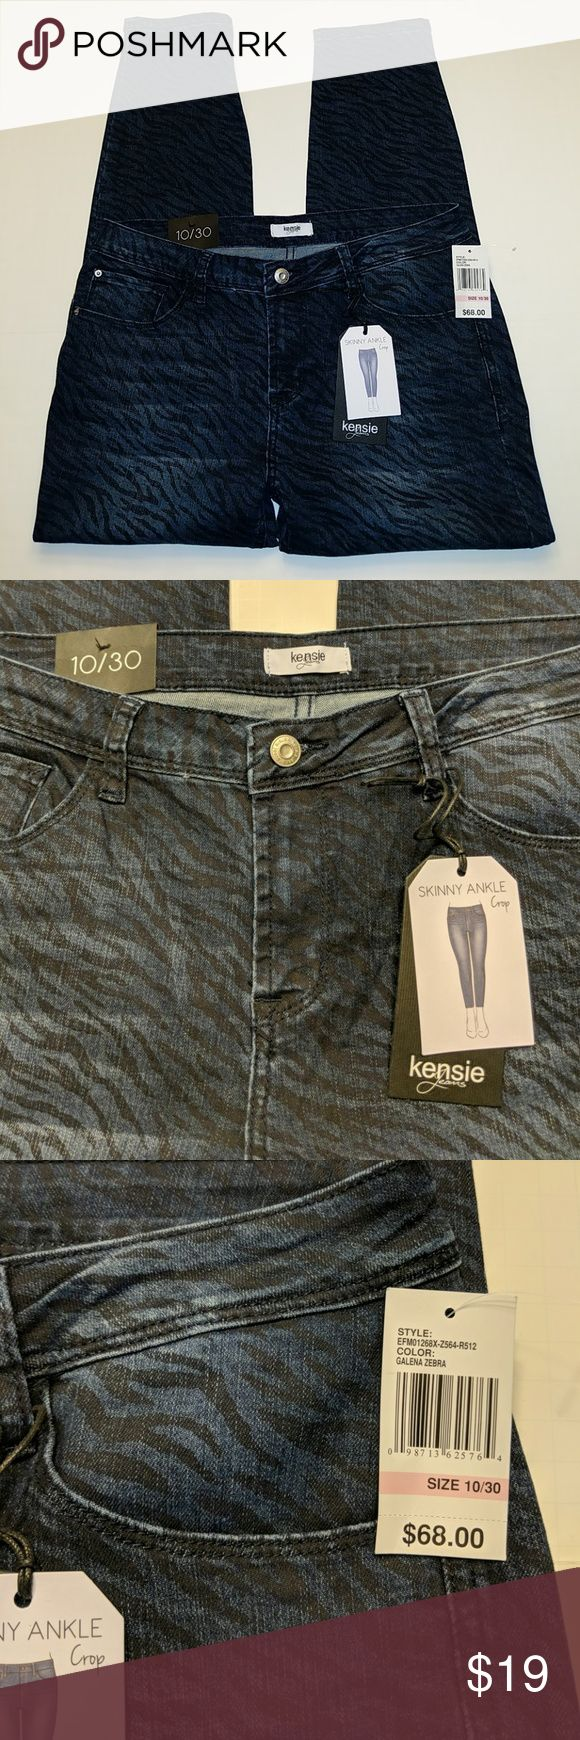 Kensie jeans animal print skinny ankle crop New with tags Kensie jeans size 10 30 skinny ankle crop blue with a black Print animal print color is called Galena zebra. 54% cotton 23% polyester 22% rayon 1% spandex. These are very stretchy. kenzie Jeans Ankle & Cropped